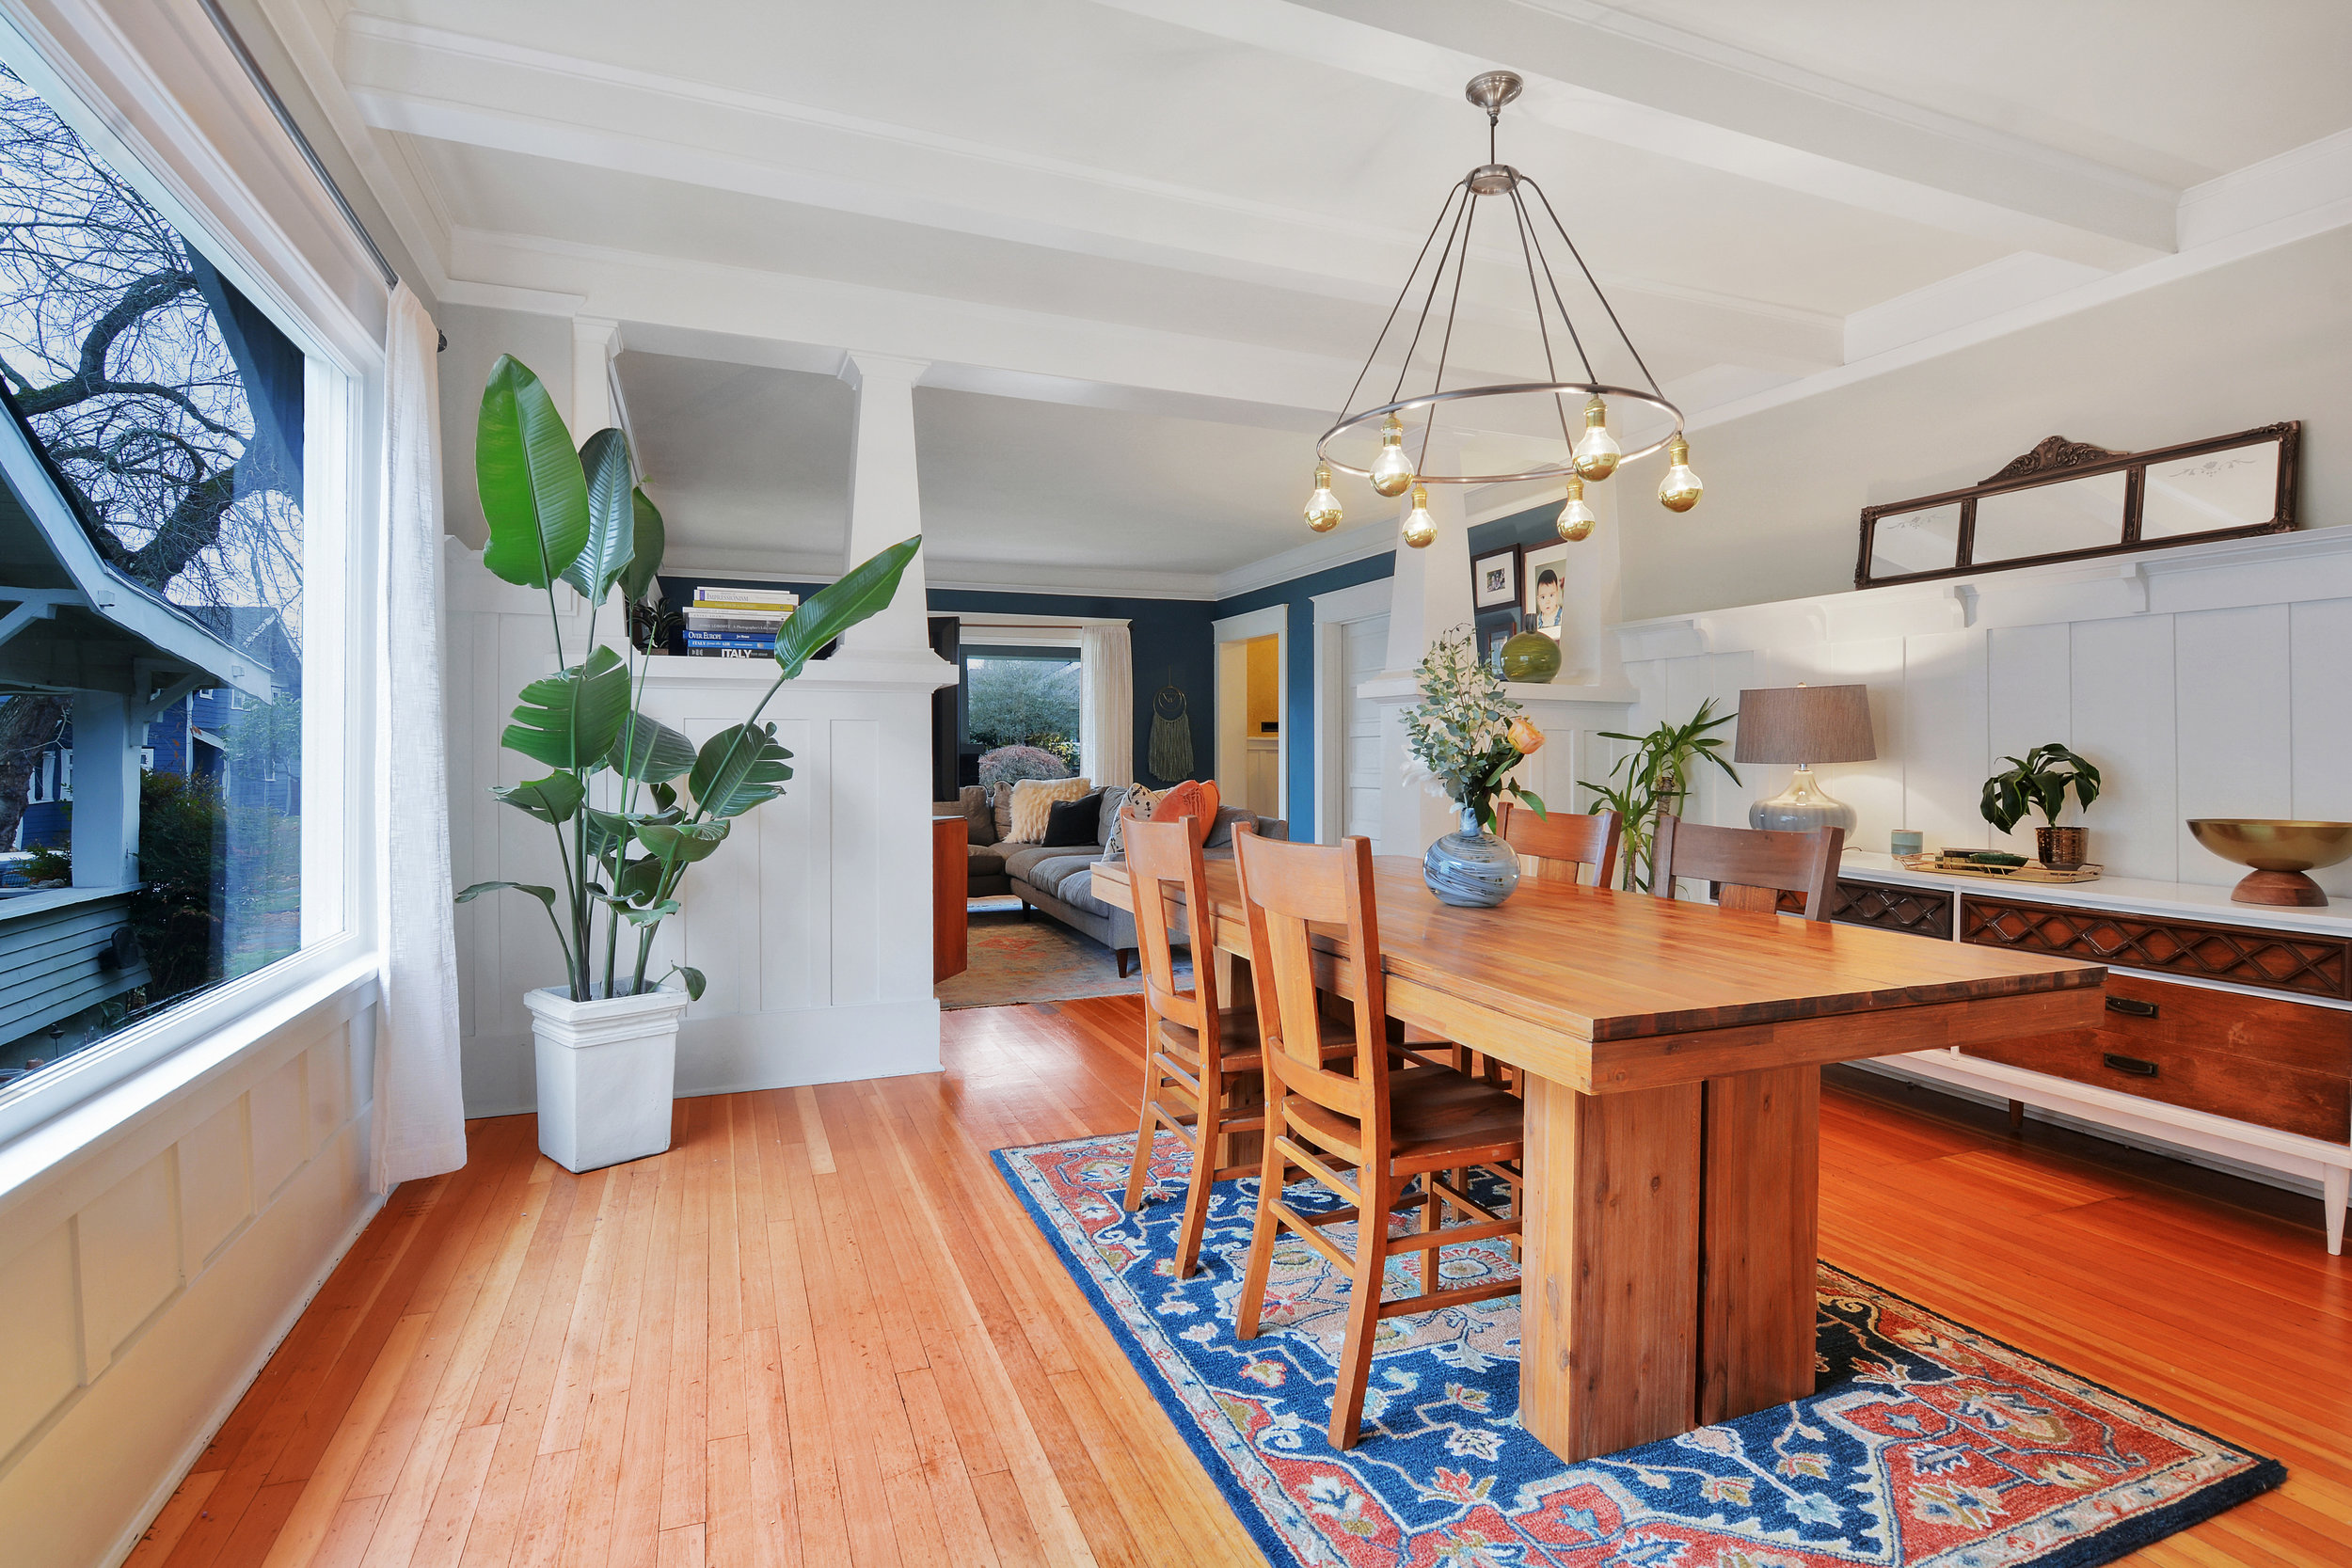 Spacious enough for a dining table and sideboard, this beautiful room fills with natural light from the picture window.